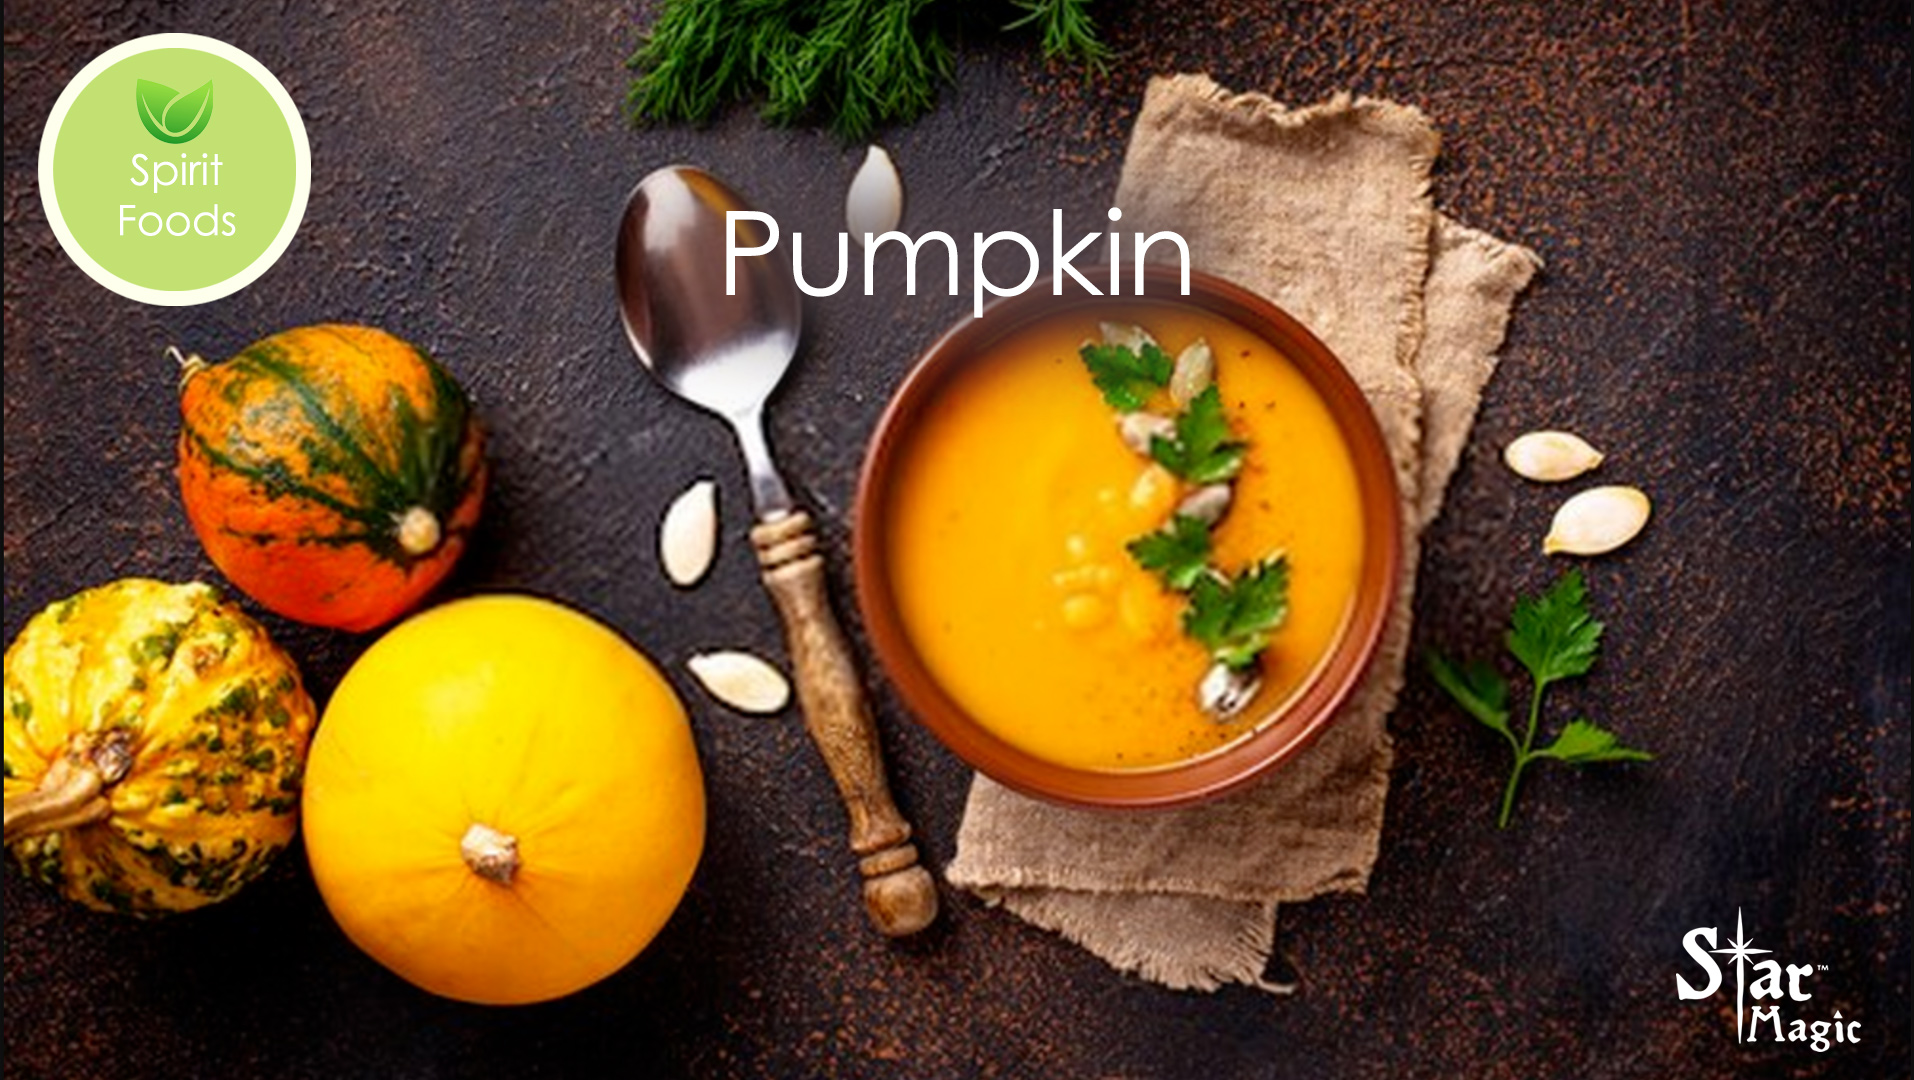 Spirit Food – Pumpkin